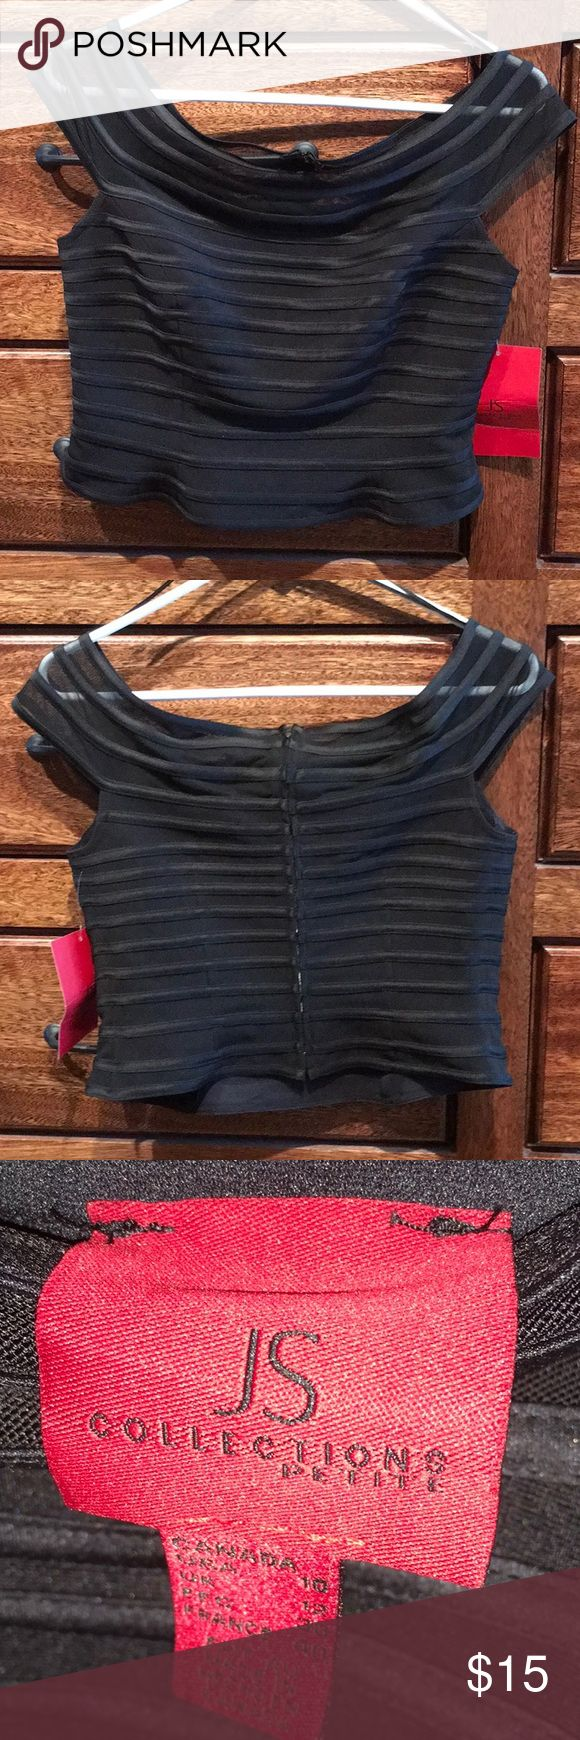 Evening Wear Top Black Top To Wear For The Holidays Or Just A Night Out! JS Collections Tops Crop Tops